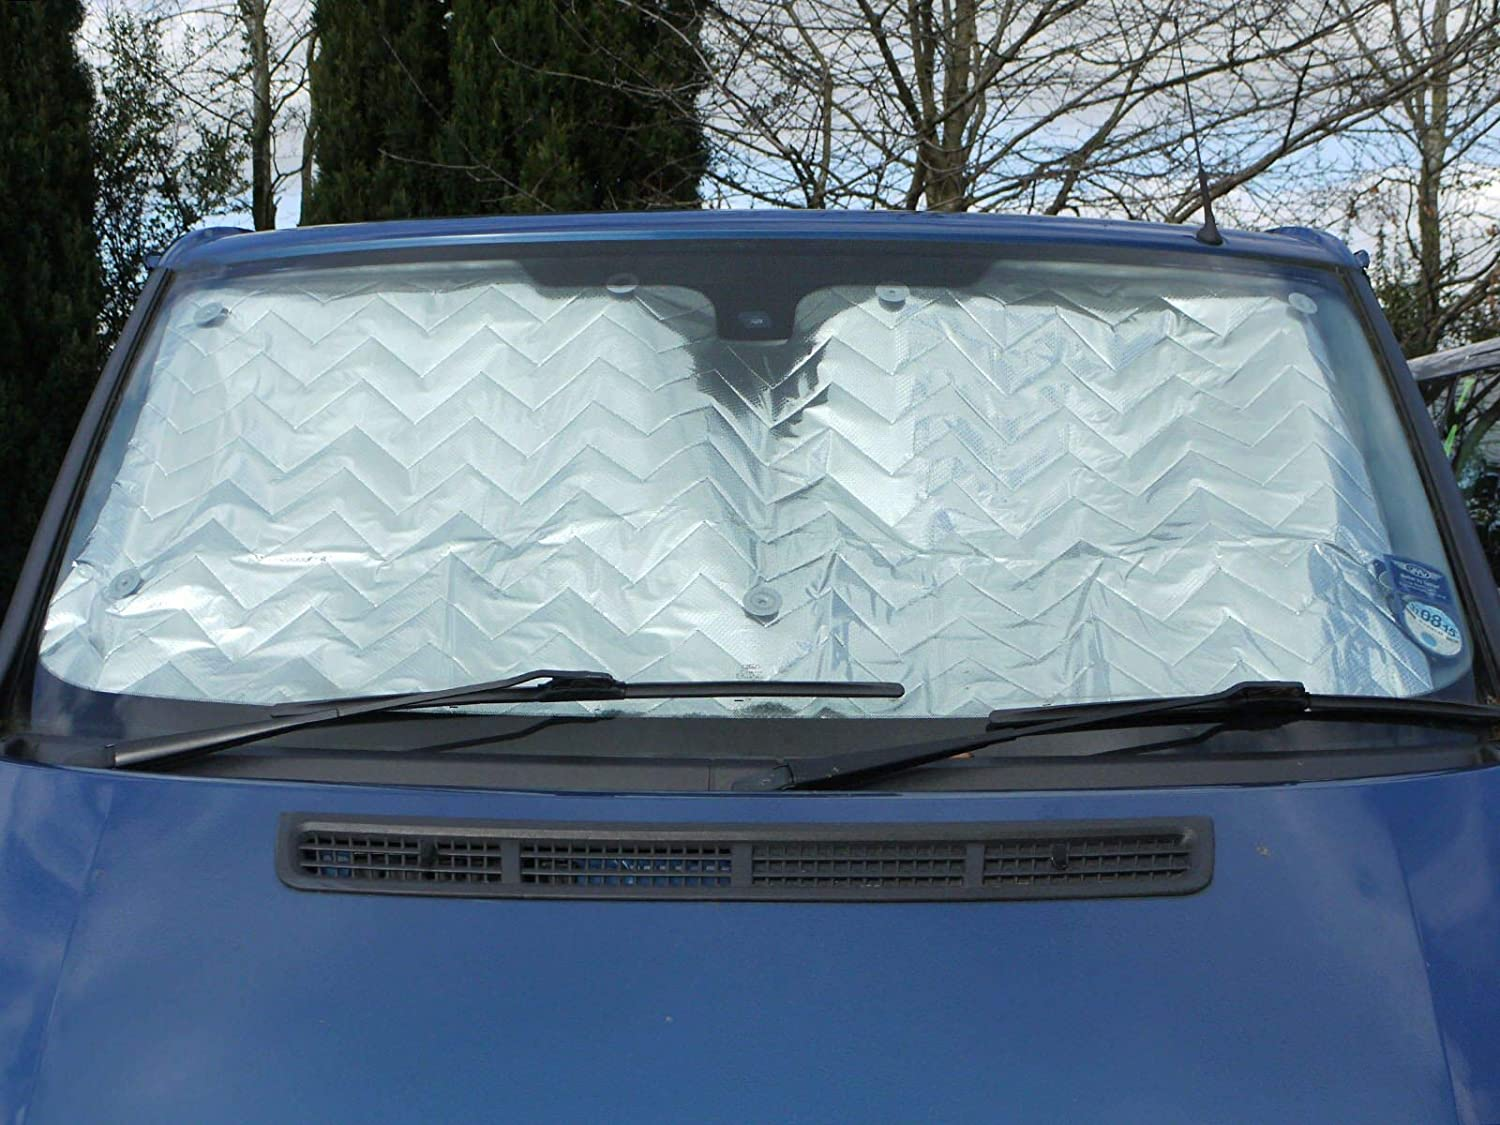 Van Demon Internal Thermal Screen Blinds 3 Piece Cover Set for Drivers Cab Windows